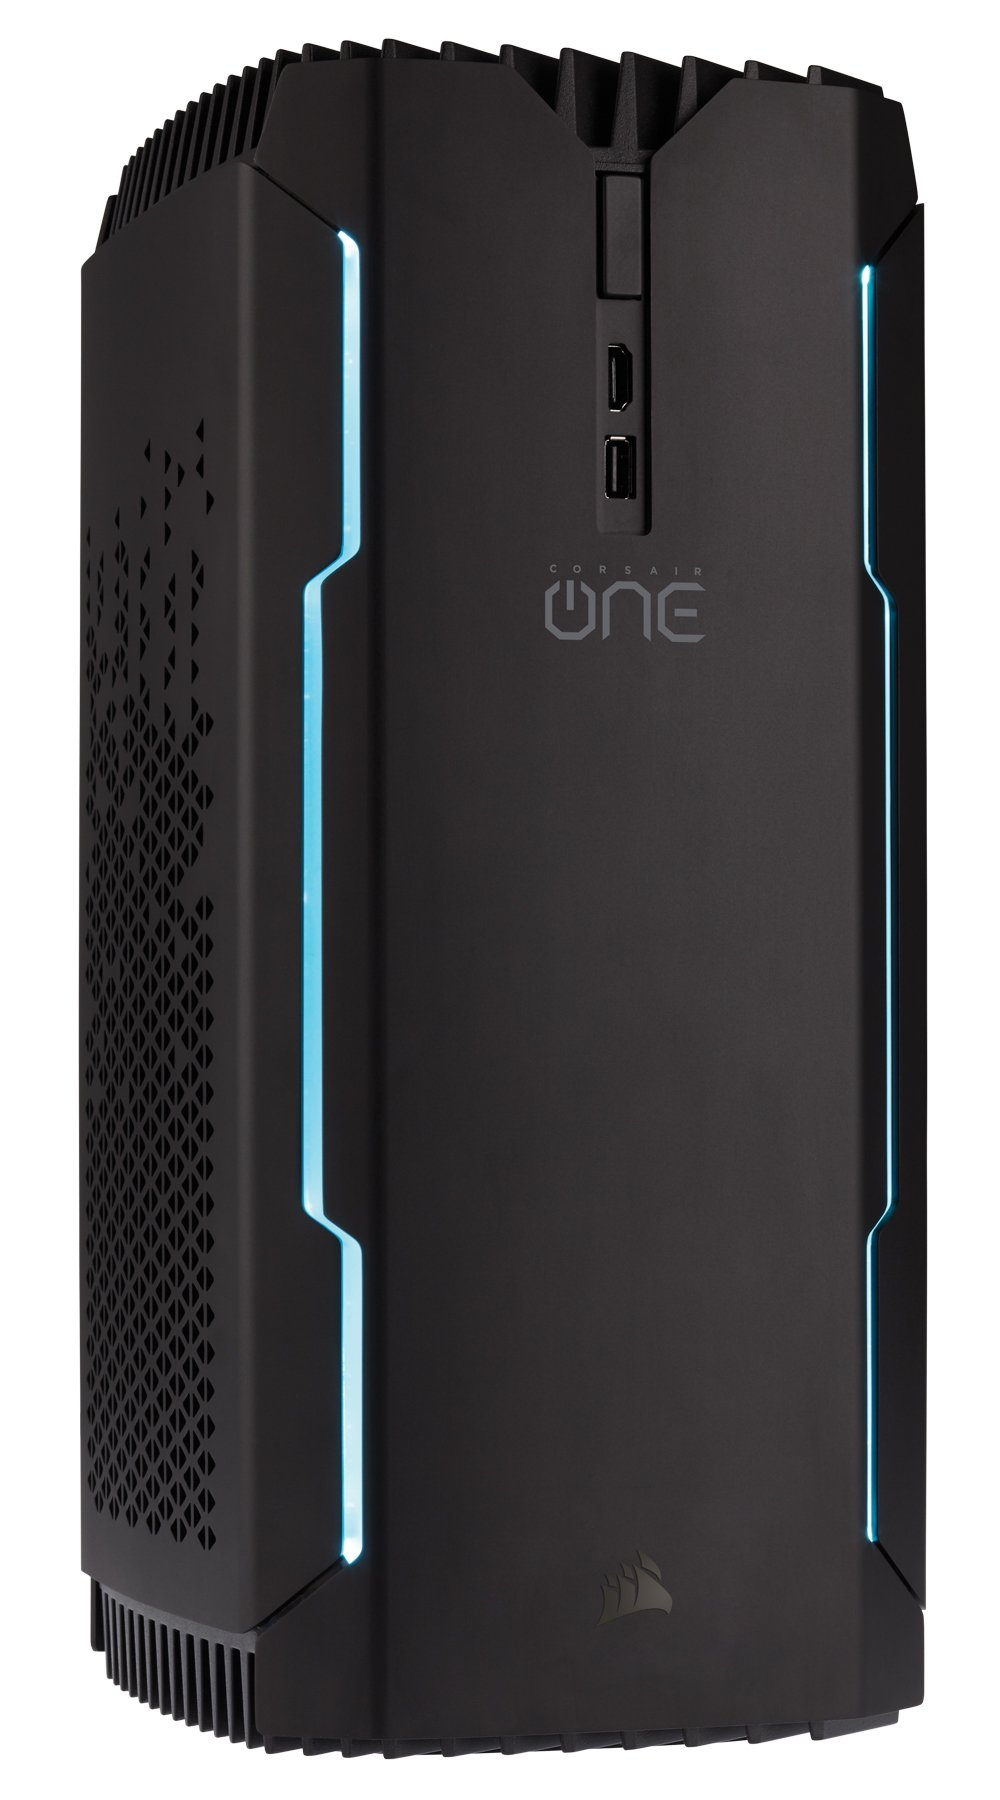 The Best Celebrity Beauty Beyoncé Gigi Hadid And More: Corsair One Gaming PC